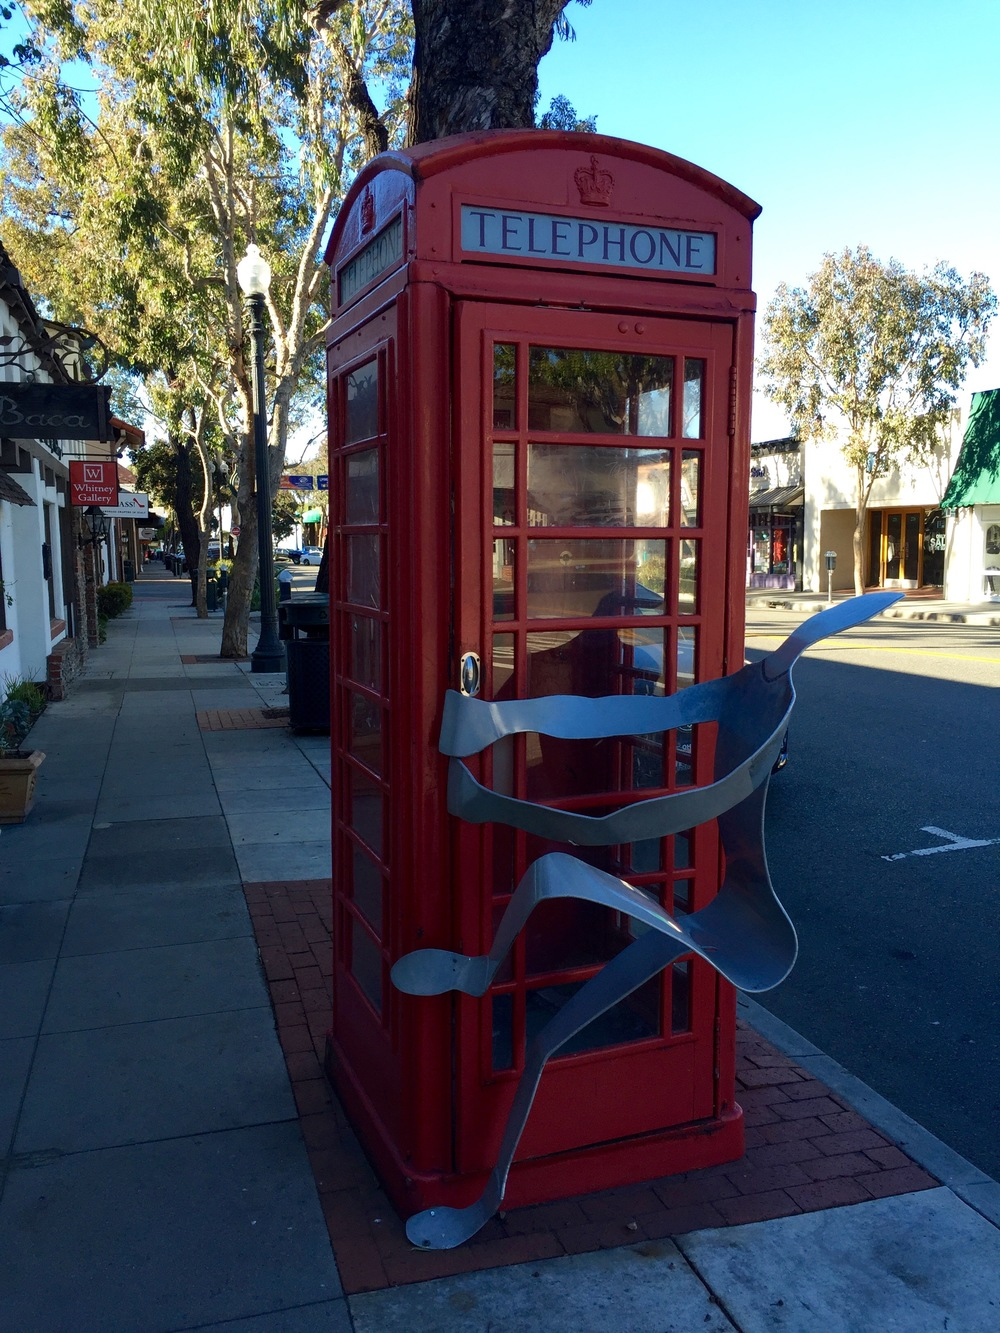 The Red Phone Booth